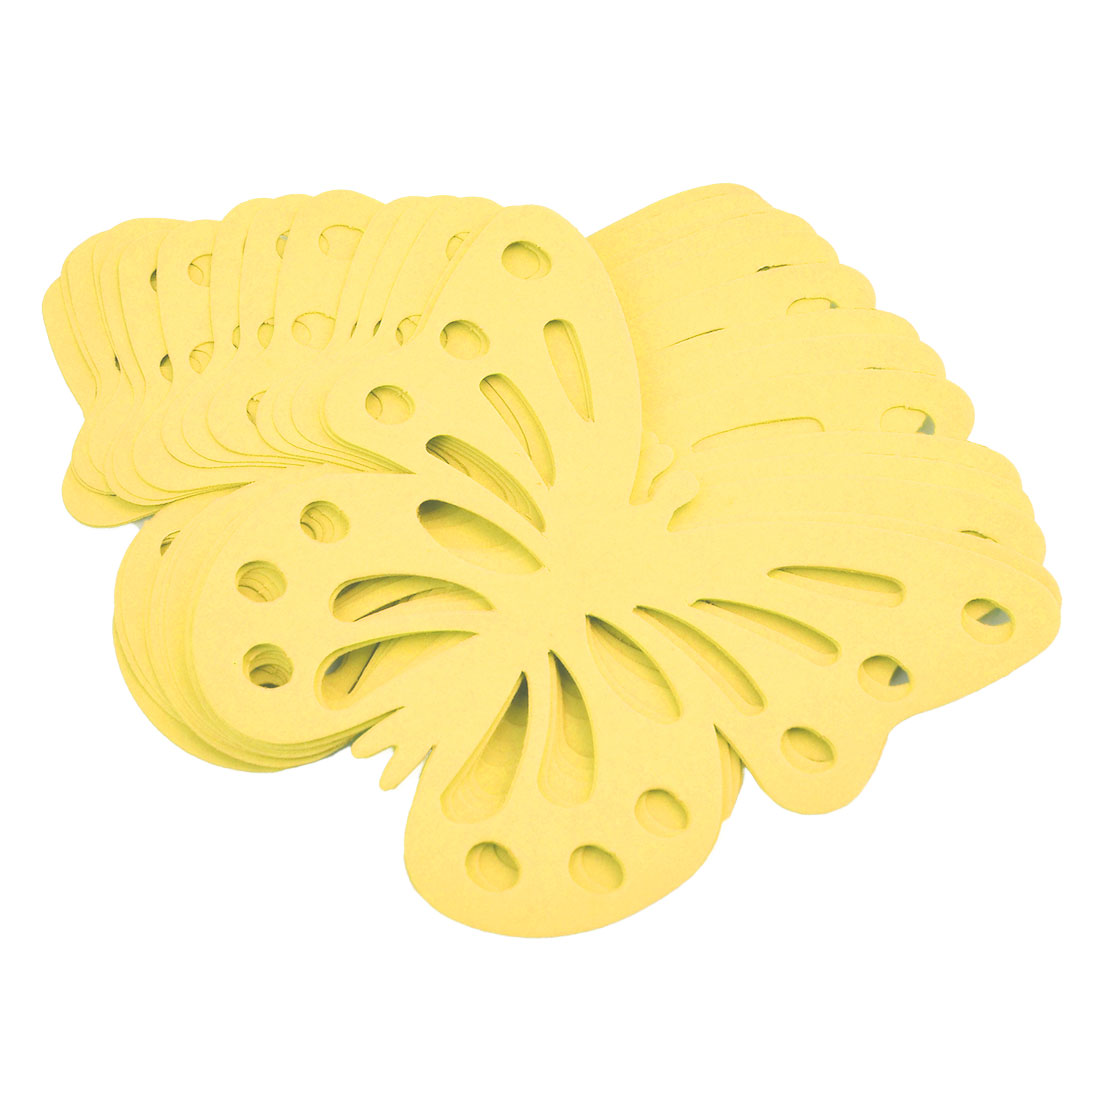 Home Paper Butterfly Design Self-adhesive 3D Wallative Sticker Yellow 24pcs